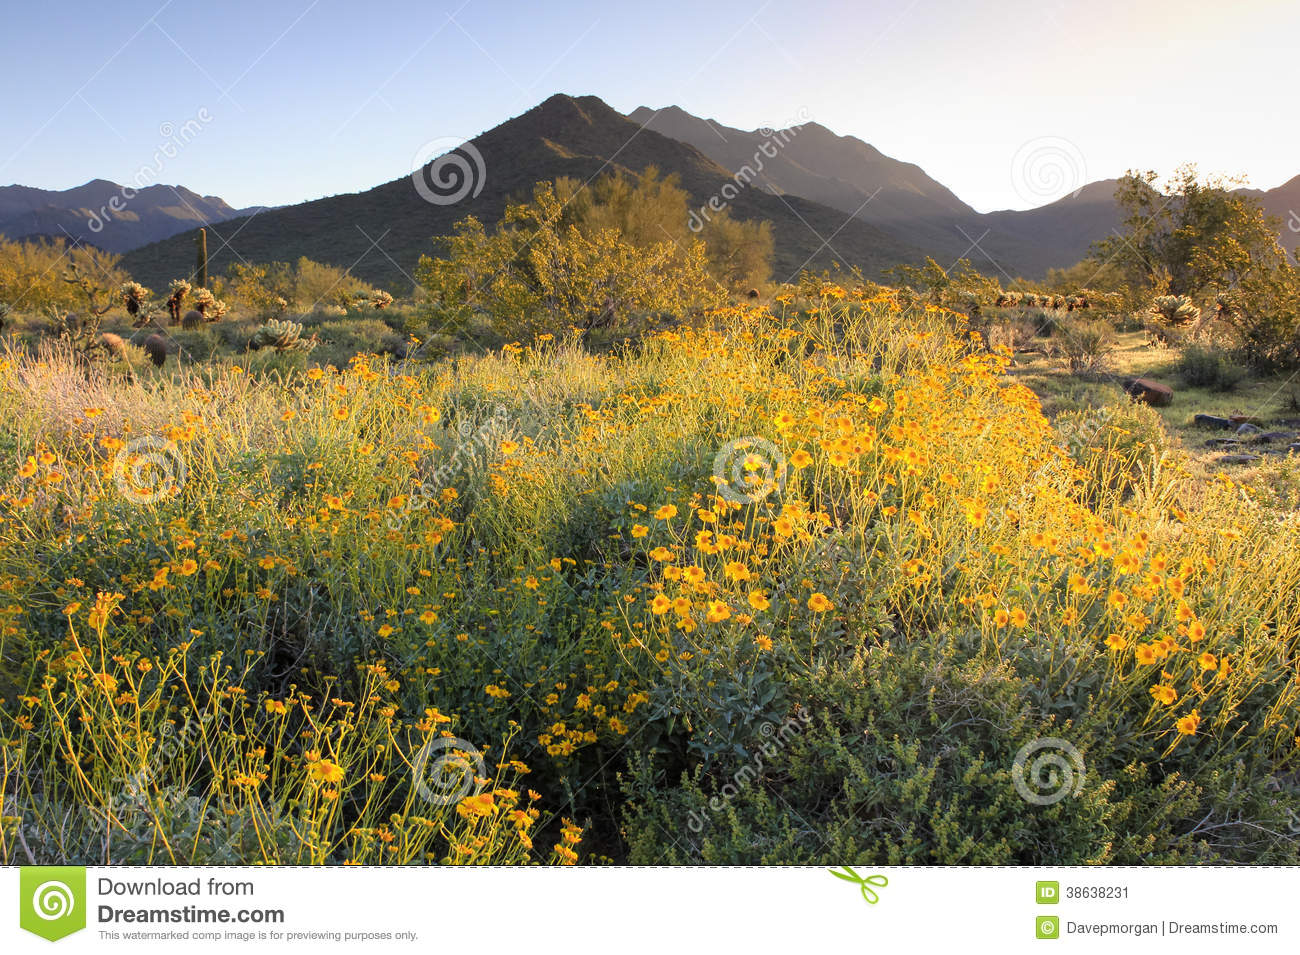 phoenix mountain preserve map with Stock Image Springtime Sunrise Sonoran Desert Lights Mountains Cacti Blooming Wildflowers Mcdowell Preserve Scottsdale Arizona Image38638231 on 5751515 besides Azsedona in addition Stock Image Springtime Sunrise Sonoran Desert Lights Mountains Cacti Blooming Wildflowers Mcdowell Preserve Scottsdale Arizona Image38638231 additionally Decoder furthermore South Mountain Maps Through Time.